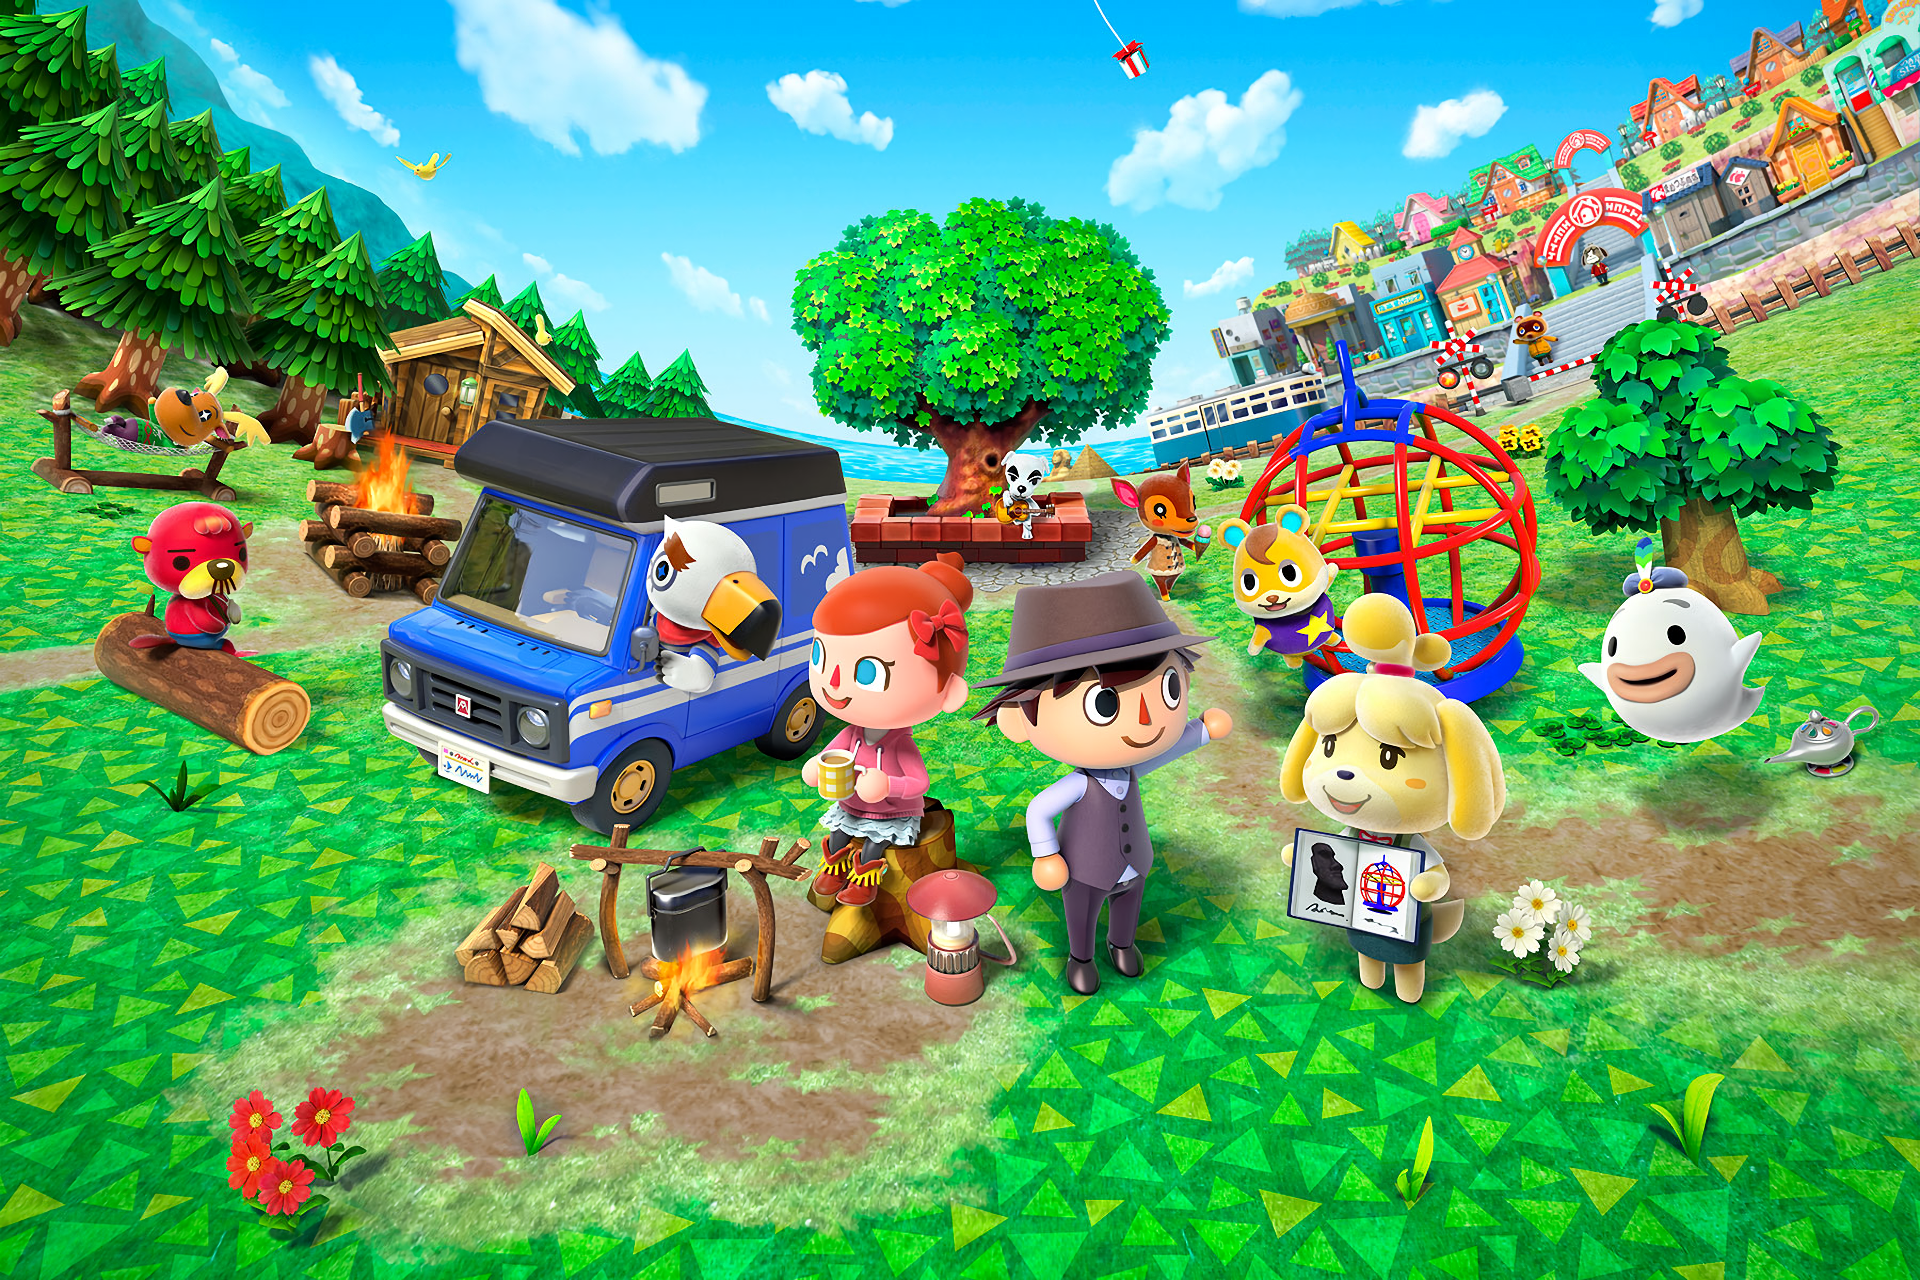 6 Animal Crossing Pocket Camp Hd Wallpapers Background Images